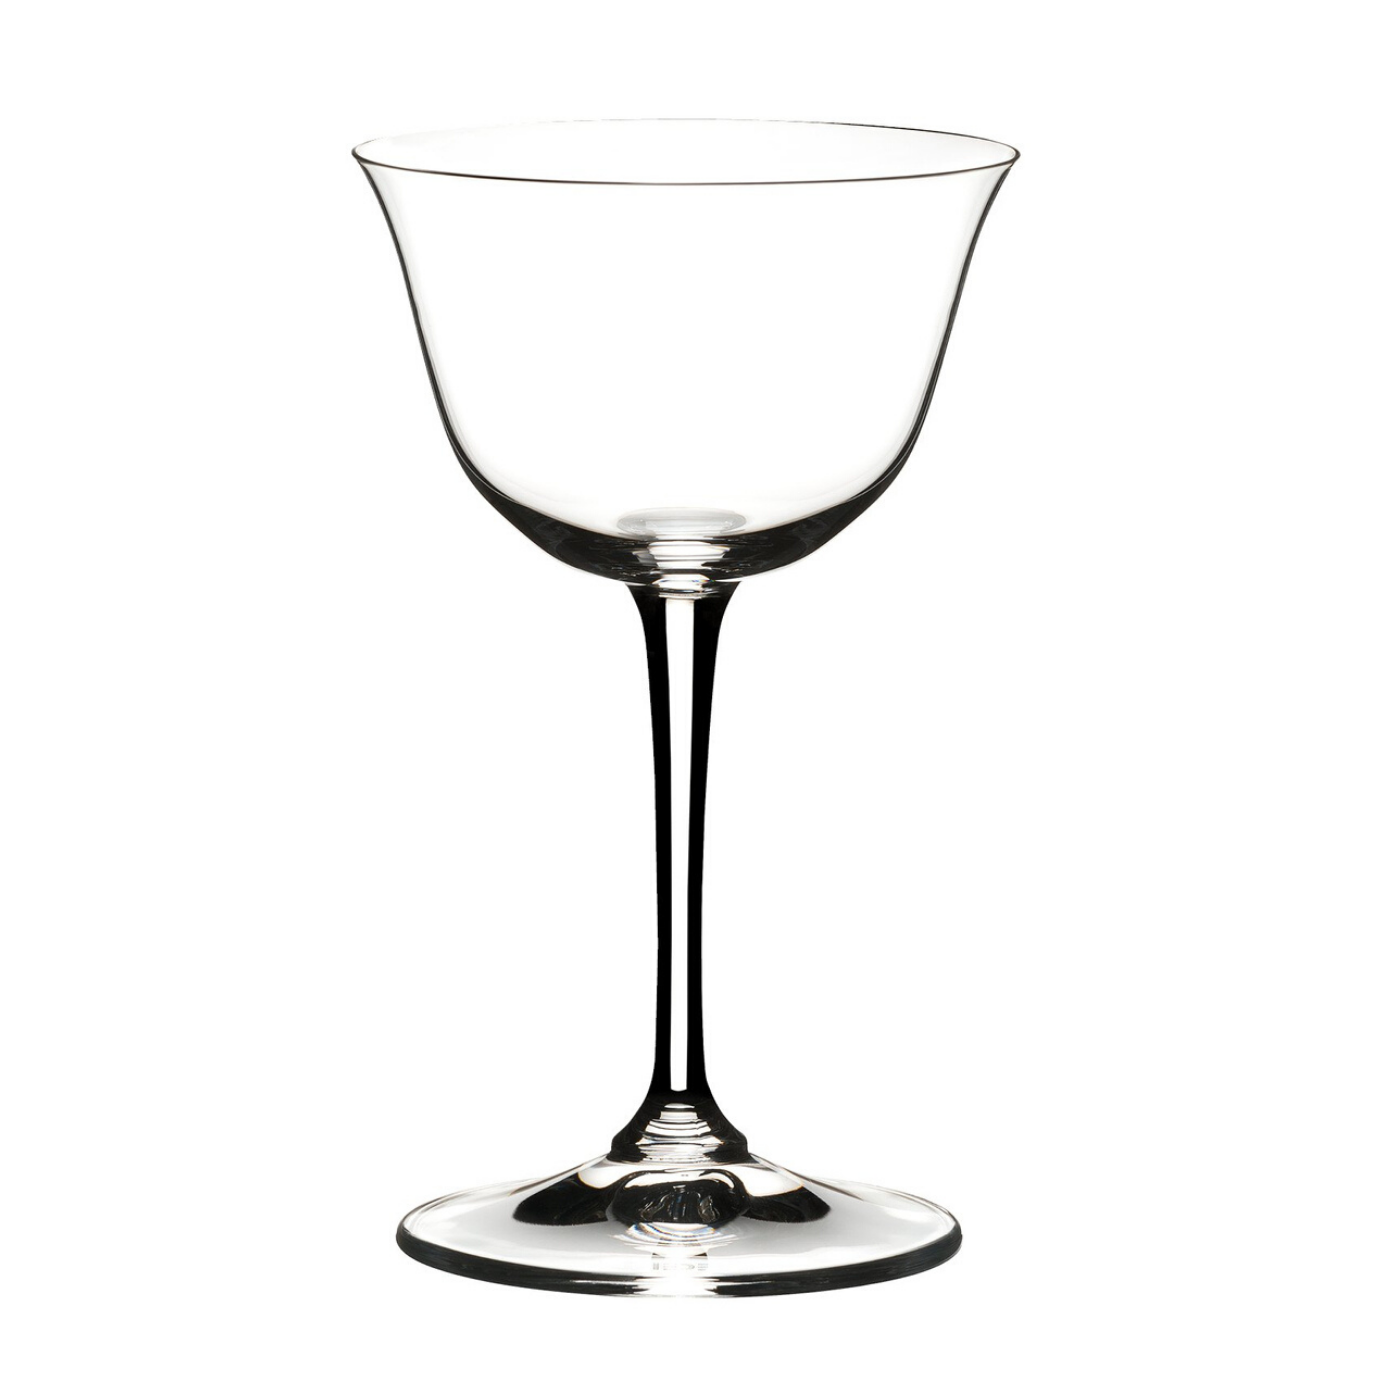 Riedel Sour Glasses (set of 2)